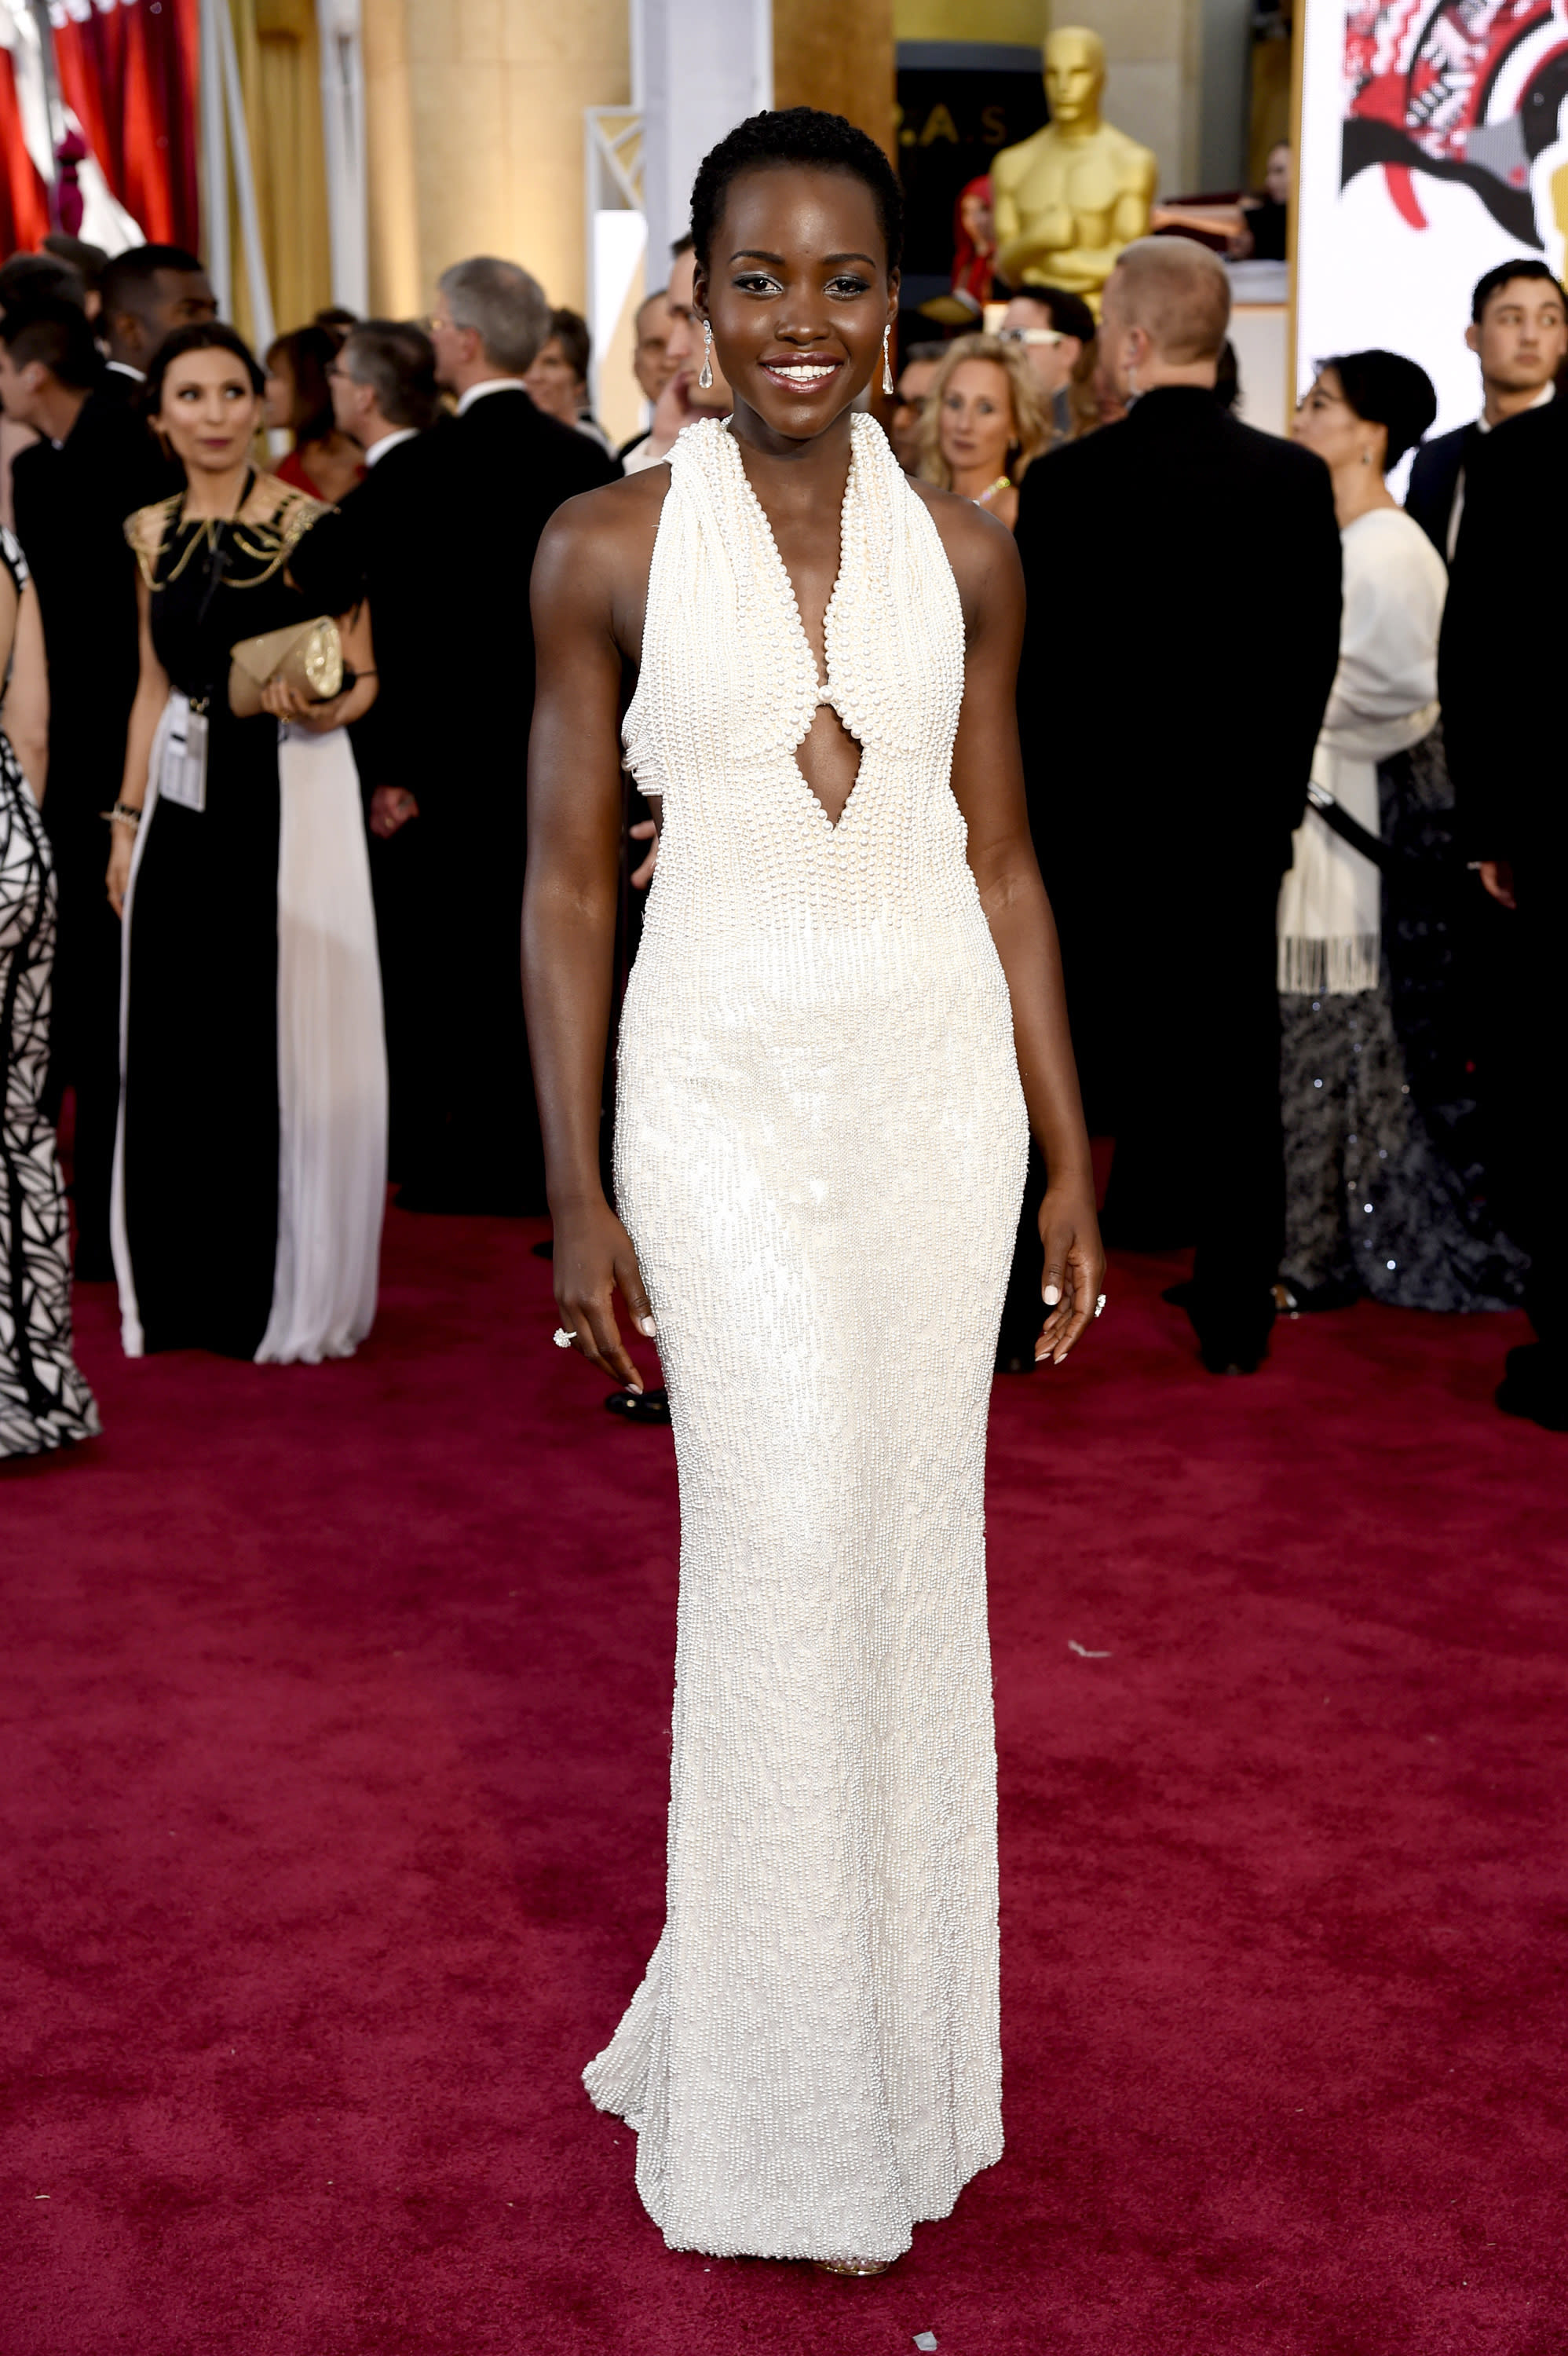 $150K dress worn by Lupita Nyong'o at Oscars reported stolen